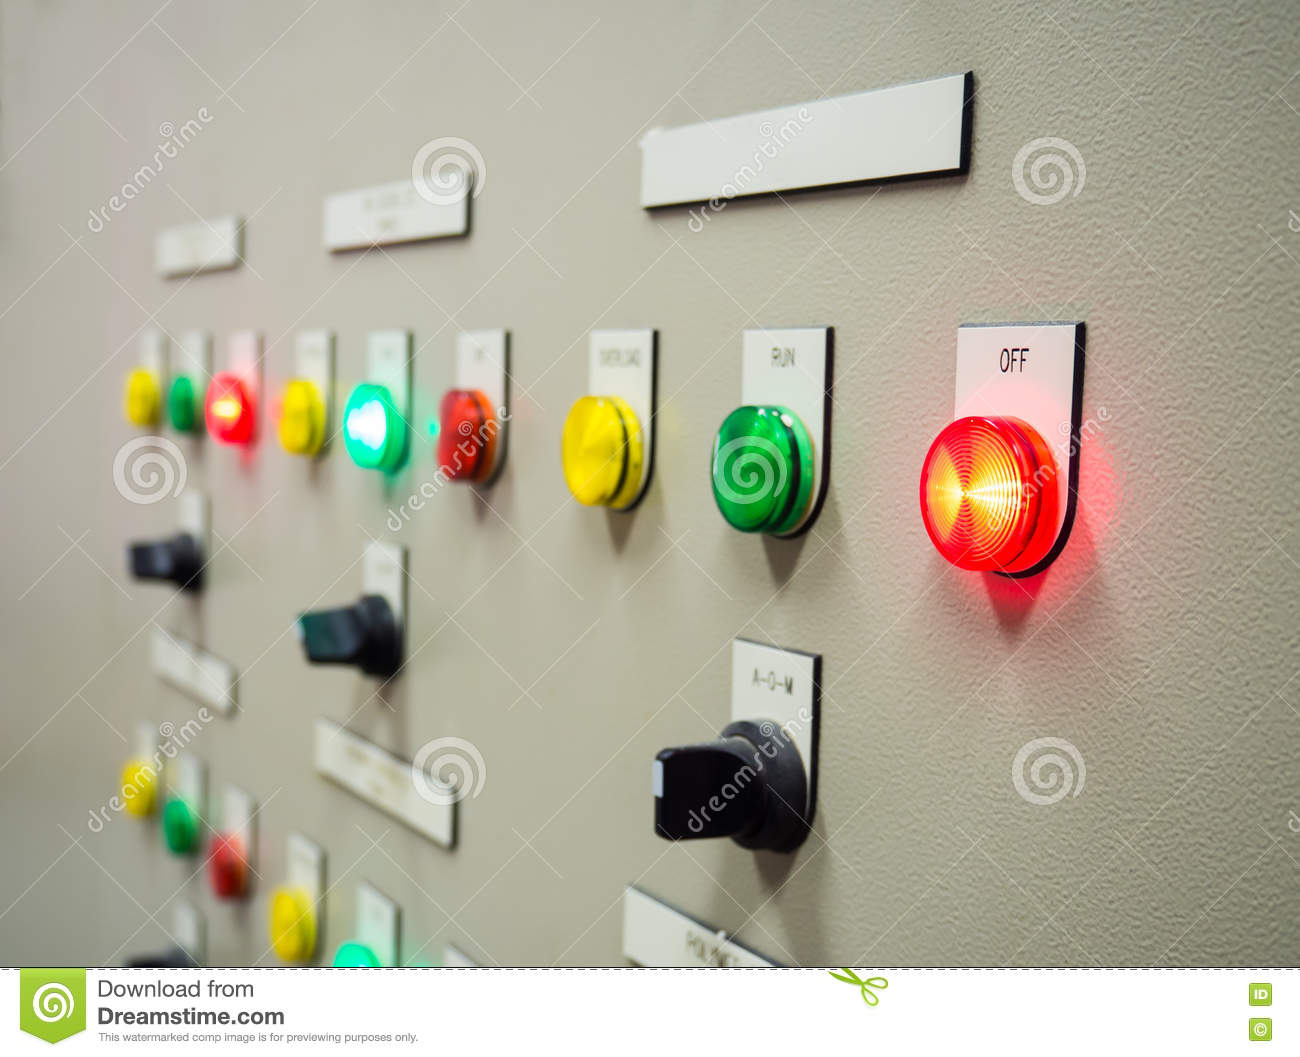 Electrical Control Panel Stock Images - 9,667 Photos